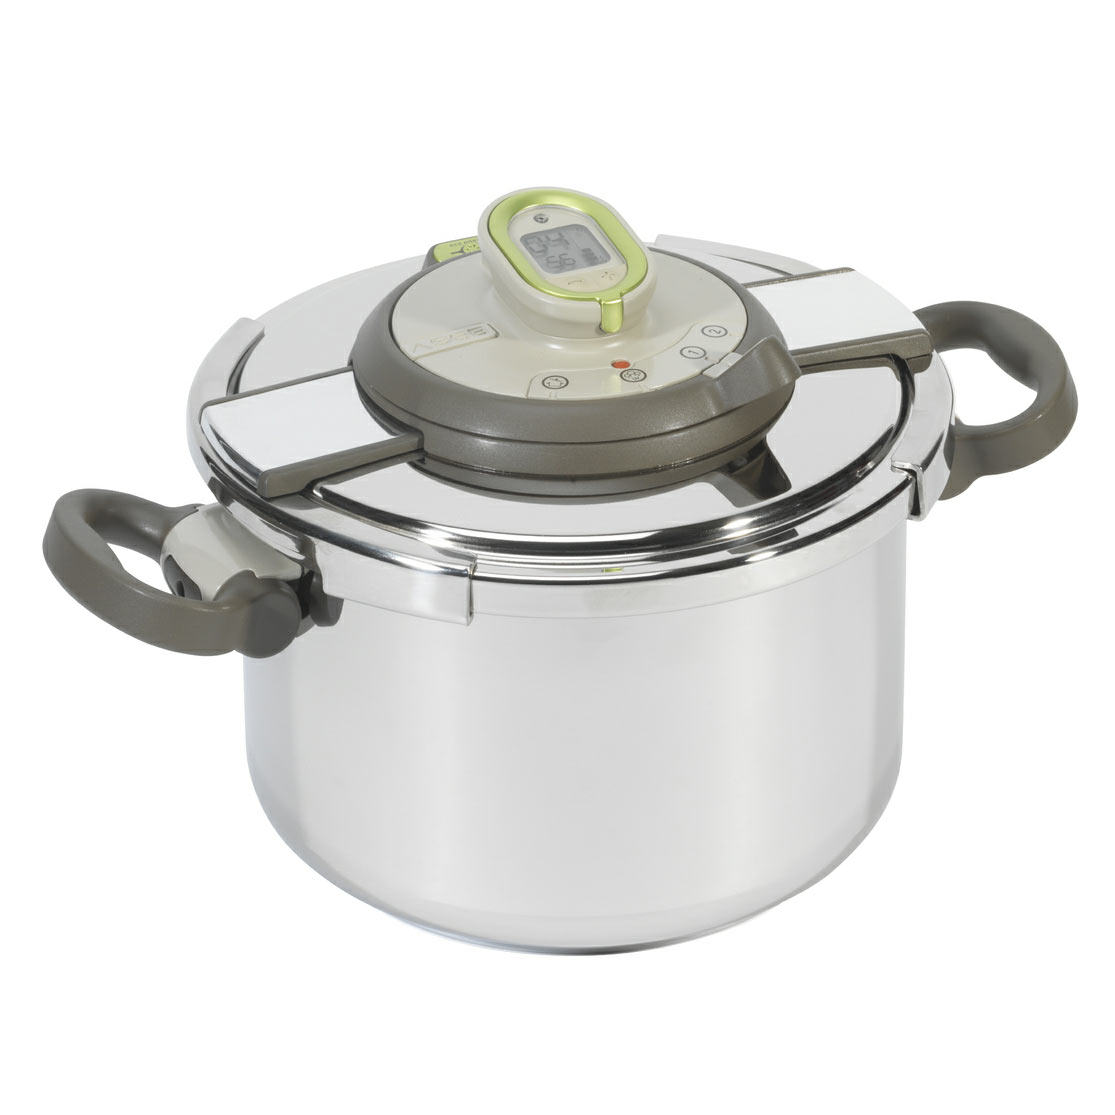 lagostina pressure cooker instructions